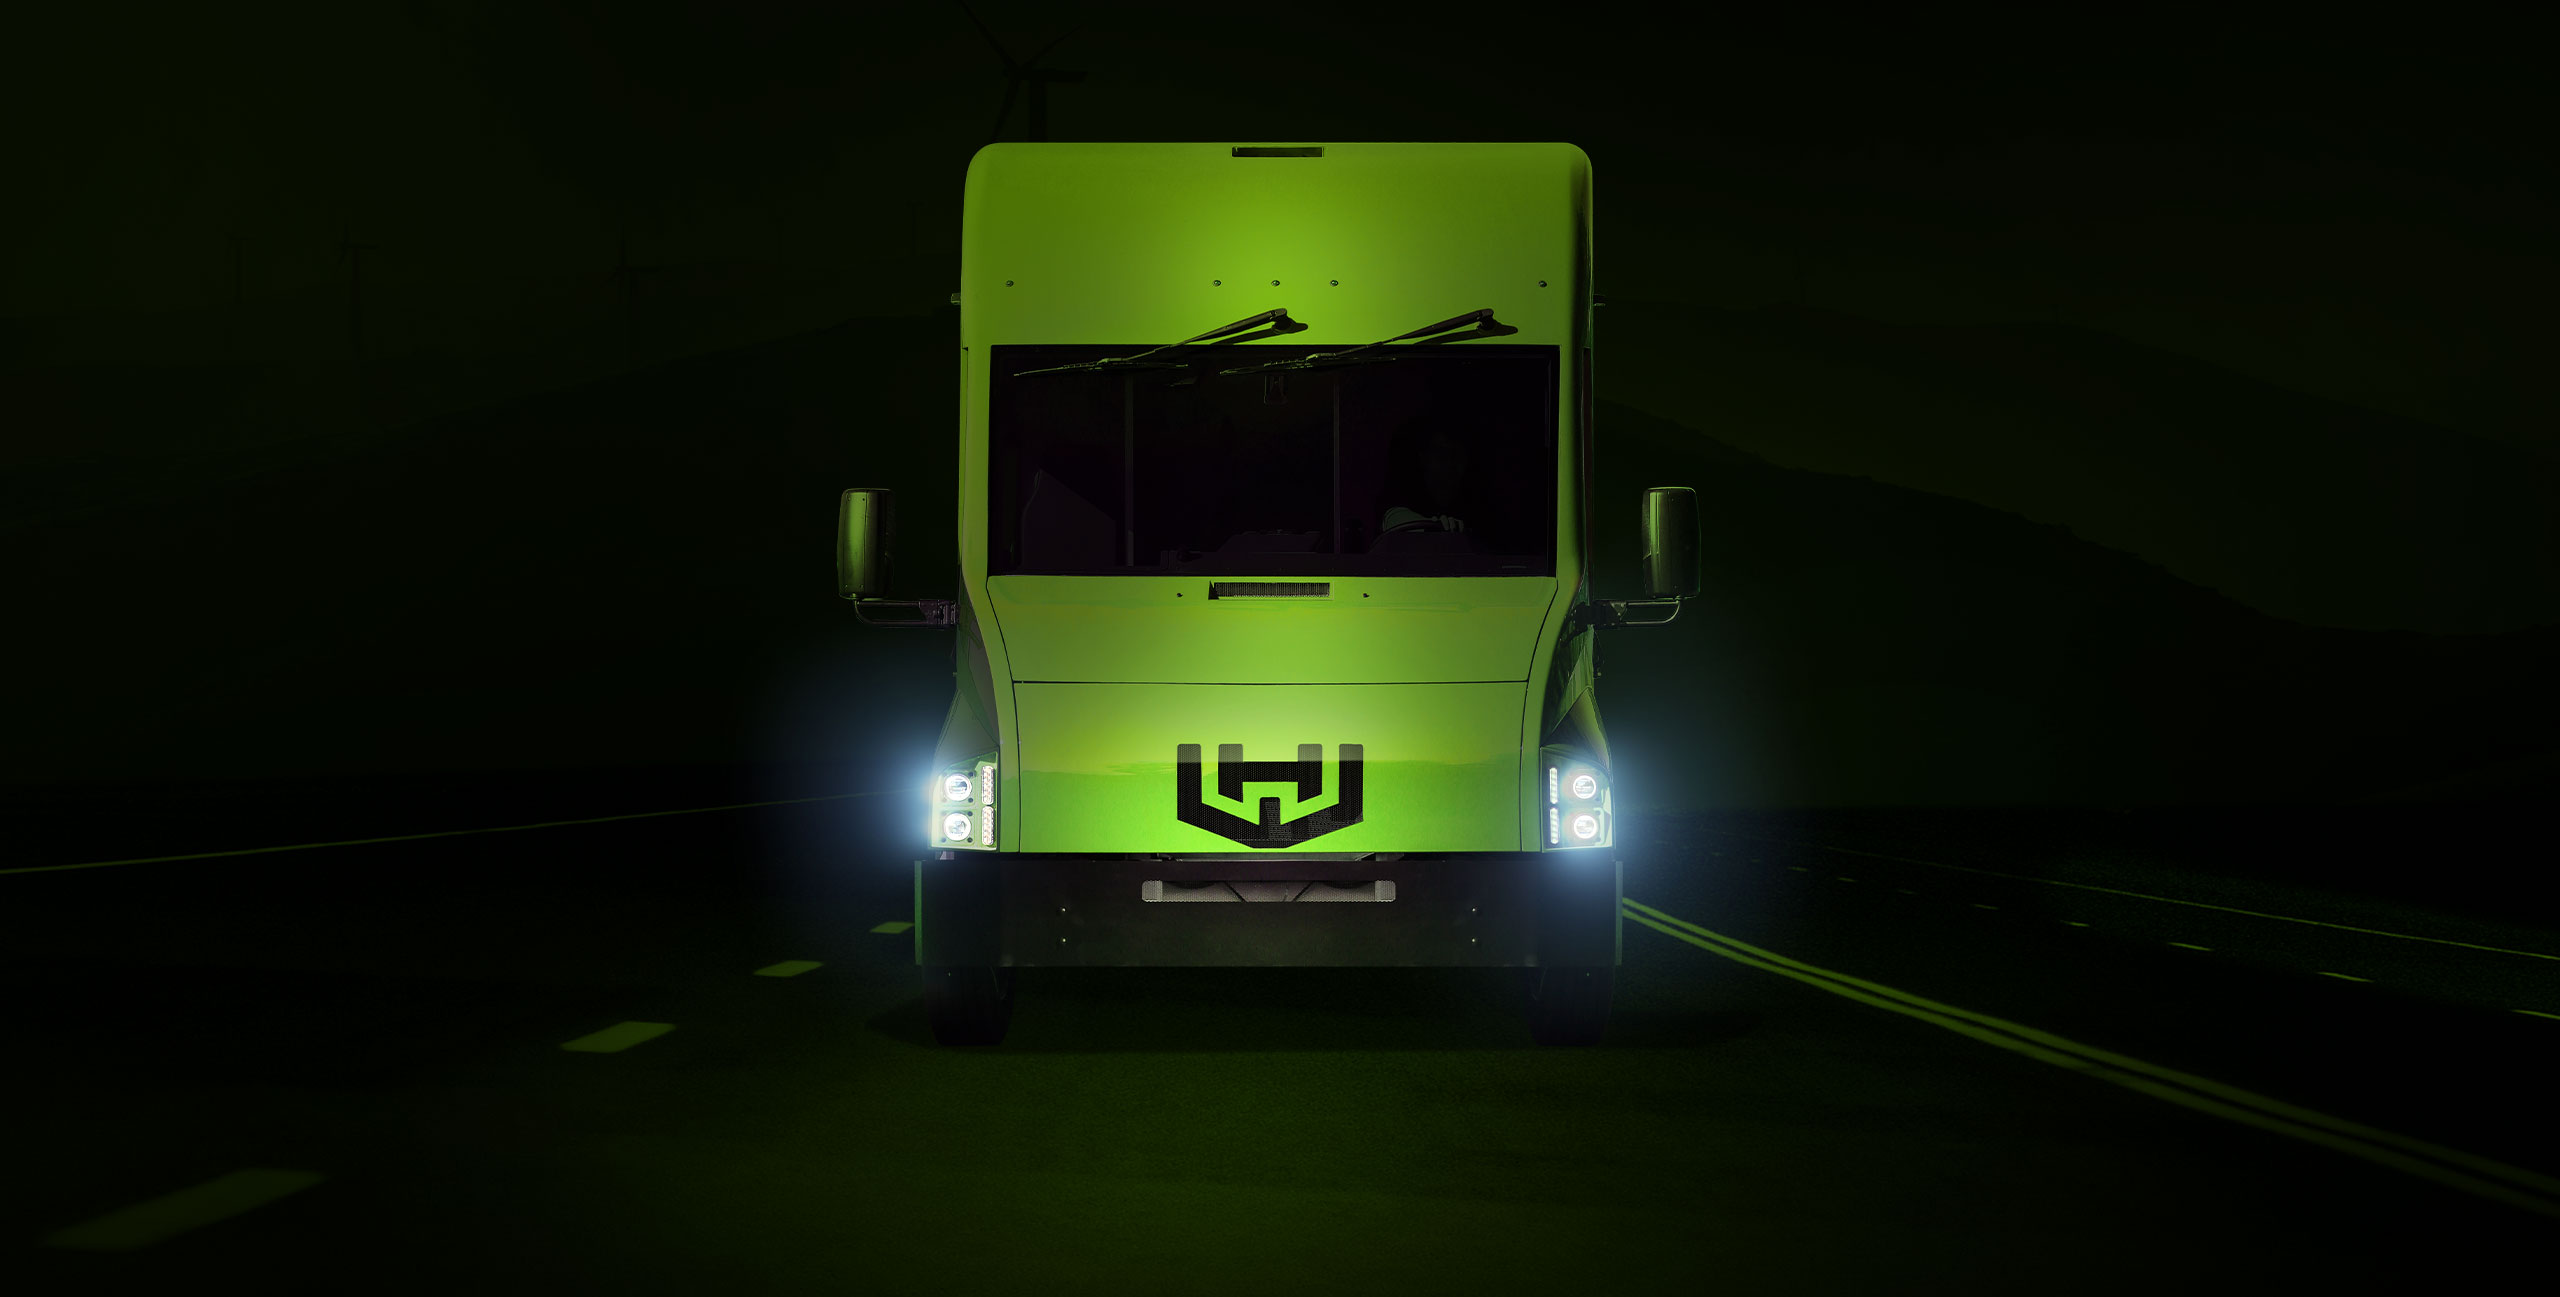 Green Workhorse truck driving forward on road with headlights on